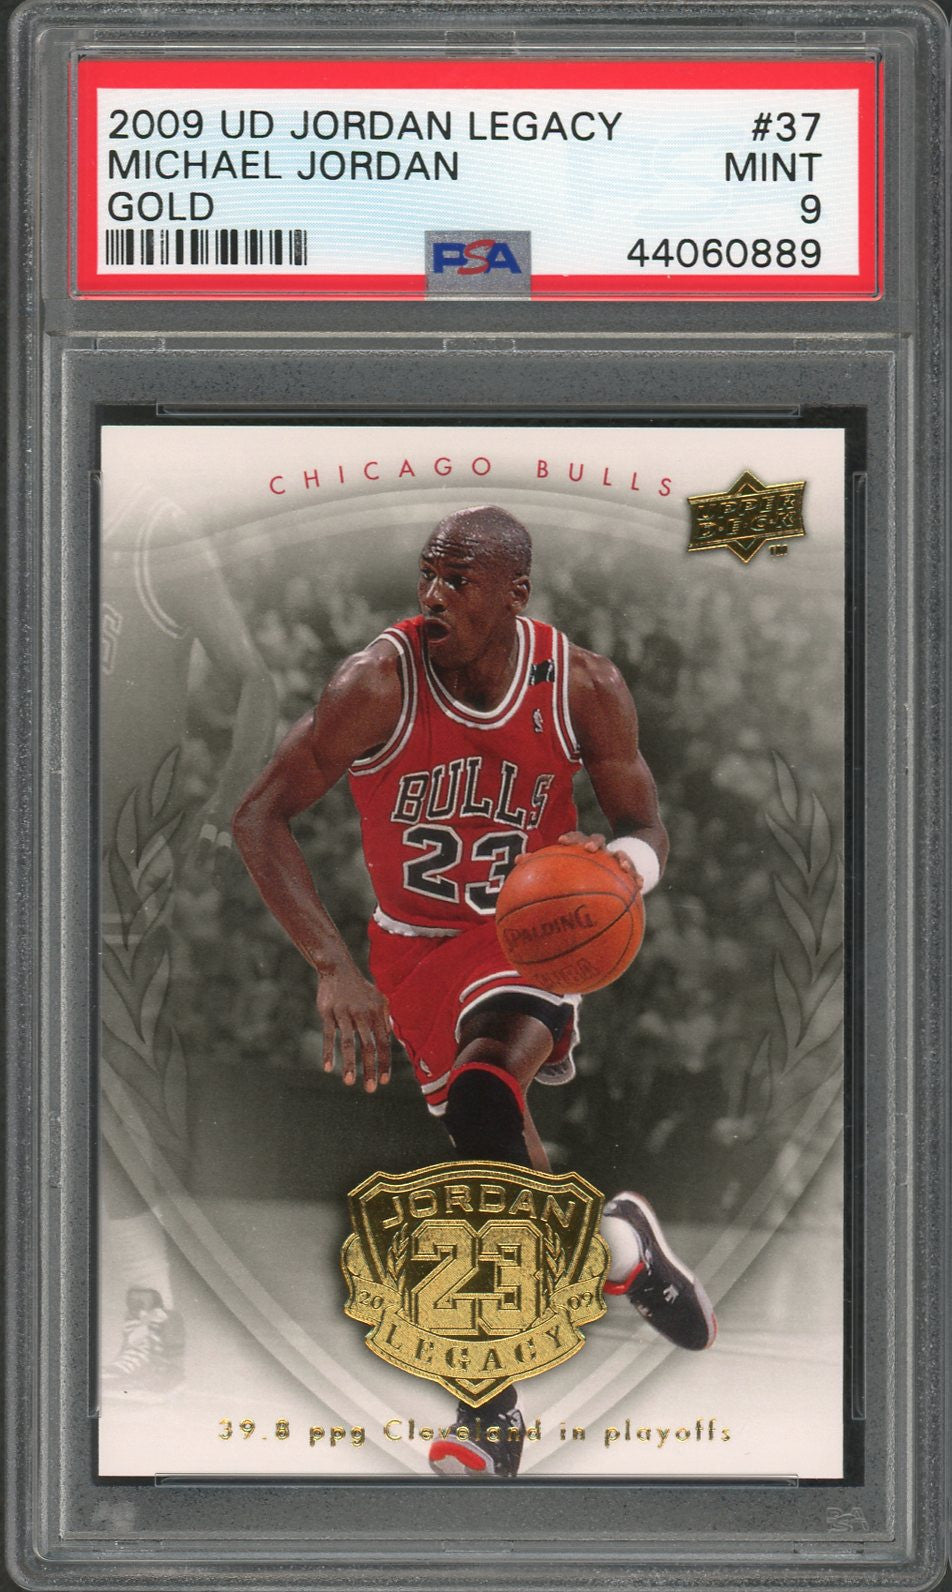 Michael Jordan Chicago Bulls 2009 Upper Deck Legacy Gold Basketball Card #37 Graded PSA 9 MINT-Powers Sports Memorabilia